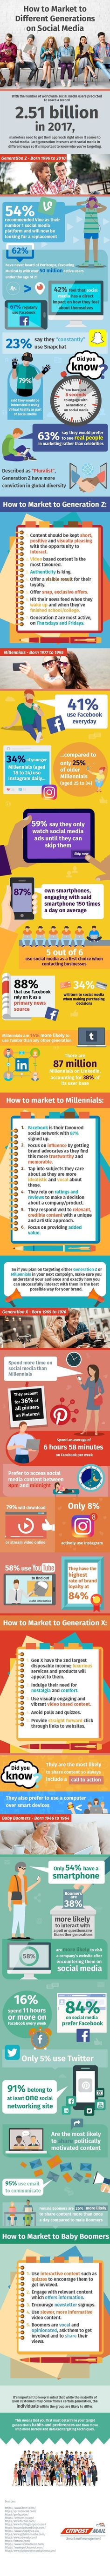 How to Market Your Business to Different Generations on Social Media [#Infographic] http://itz-my.com